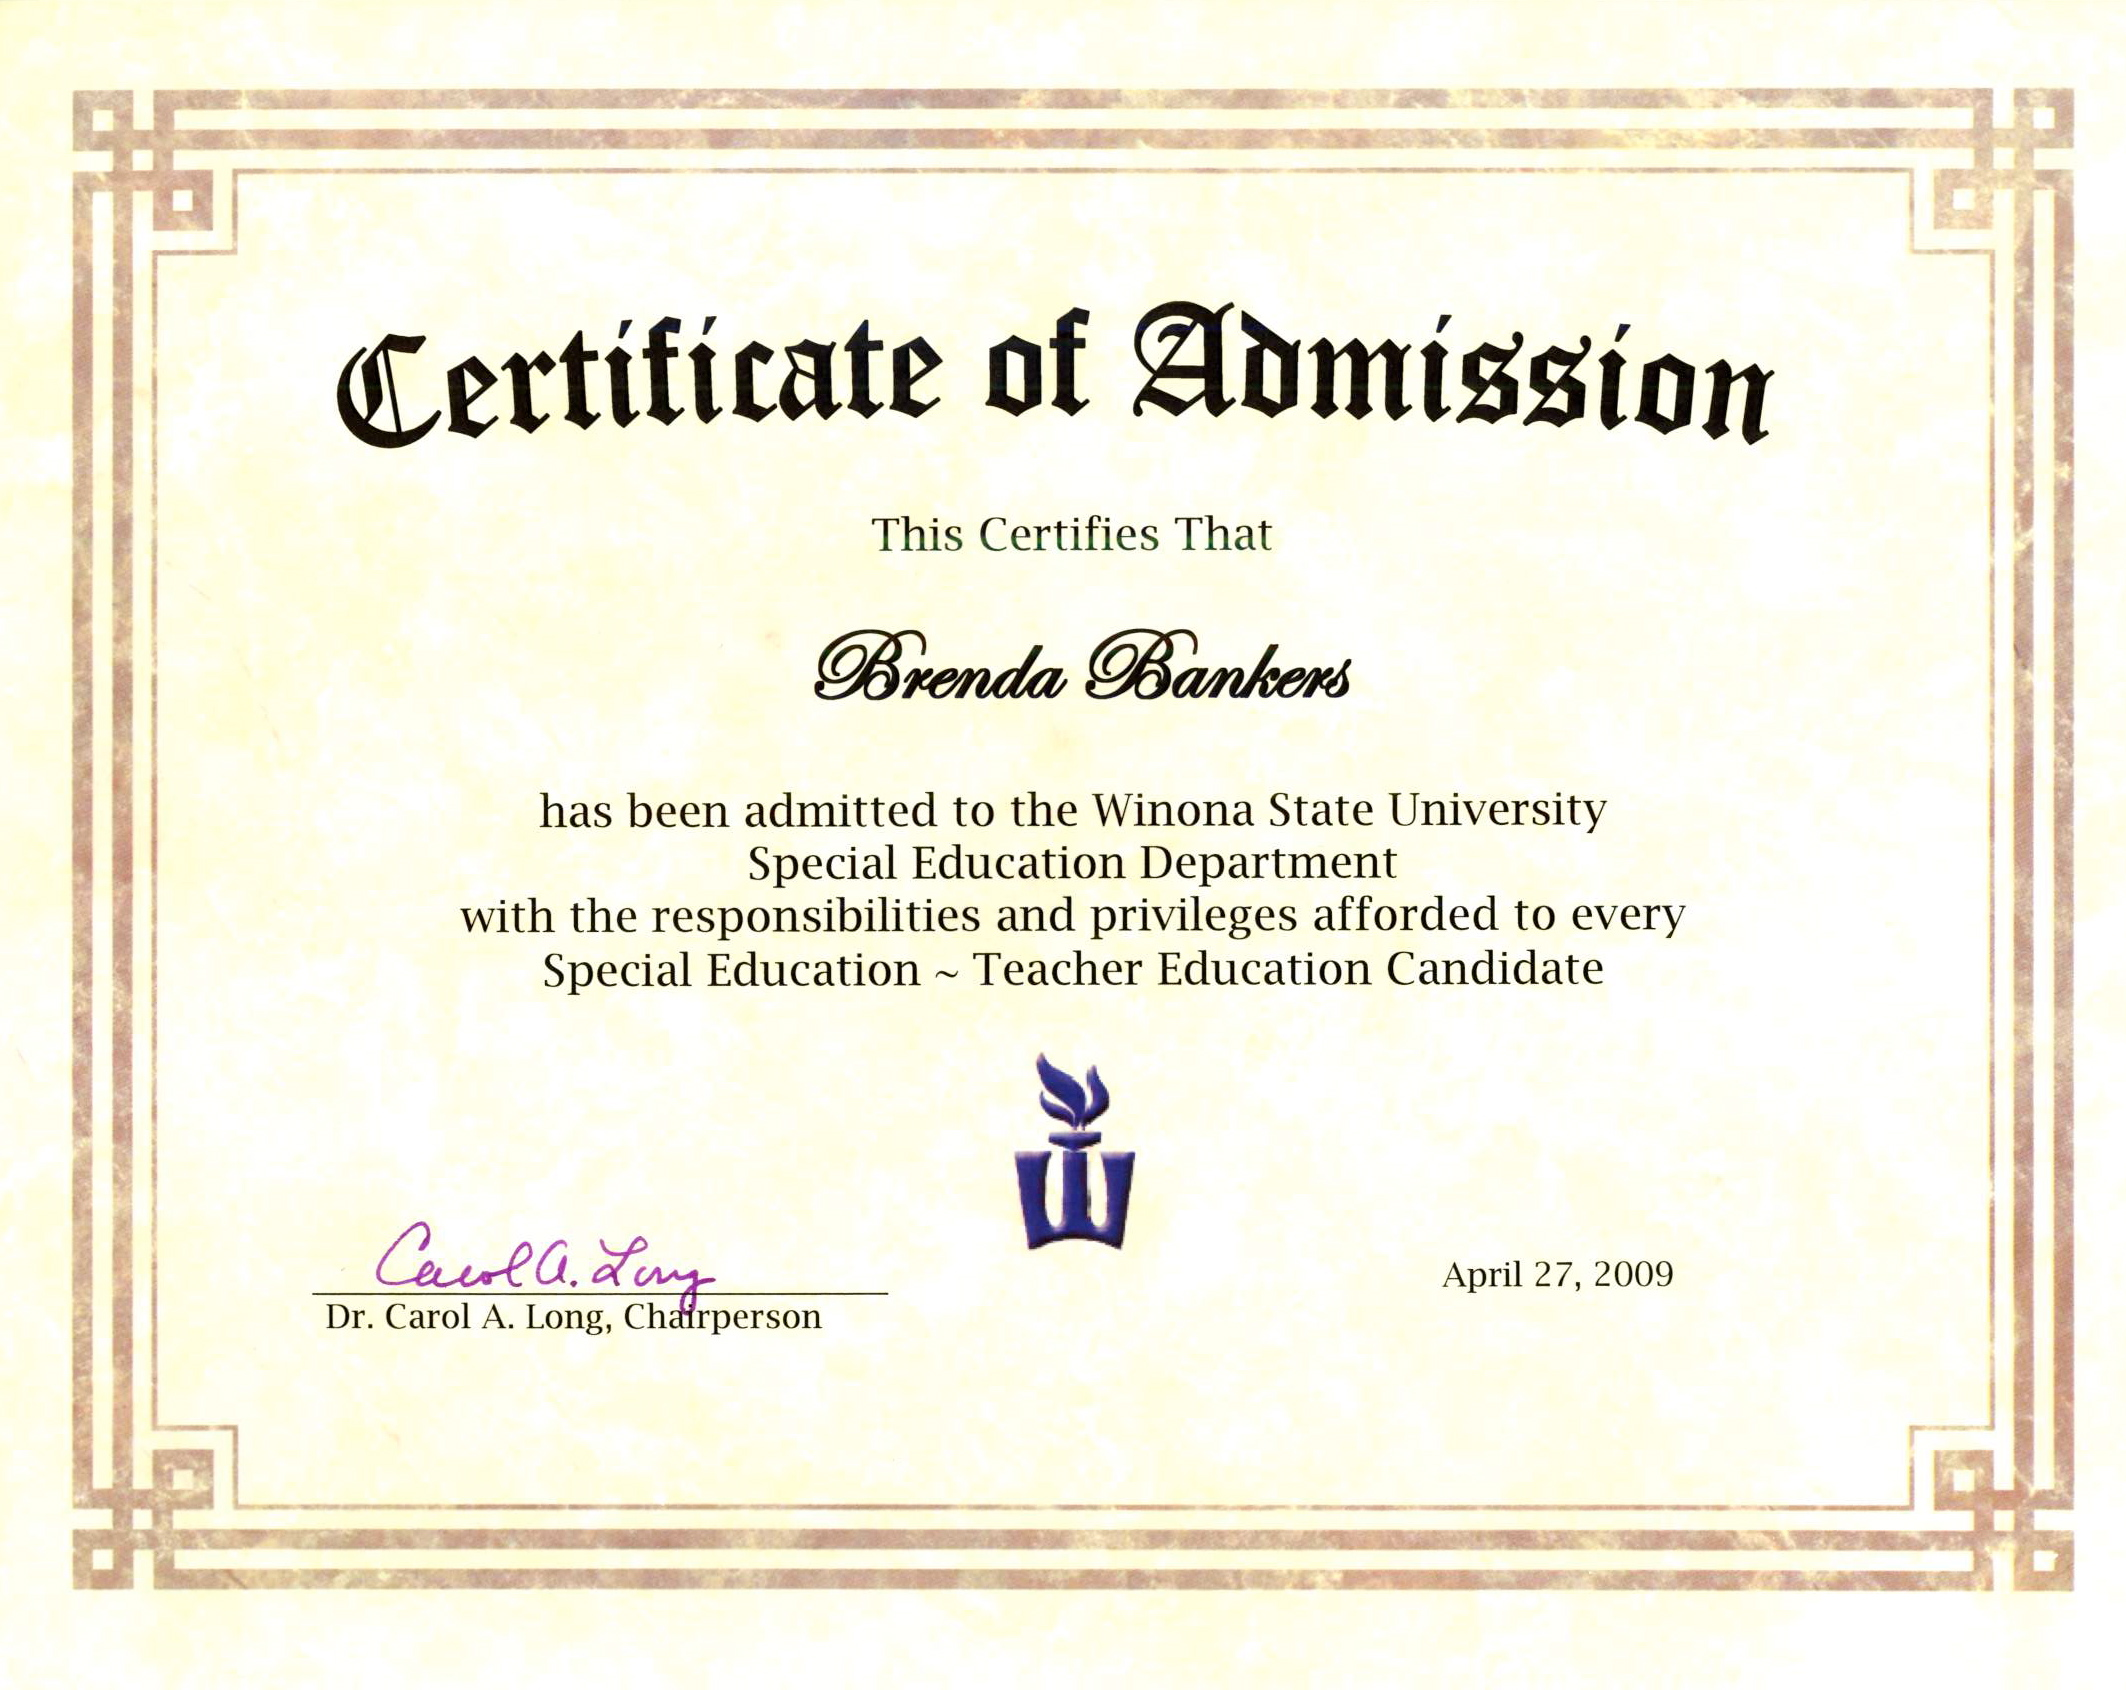 Certificate Of Admission To Winona State University's